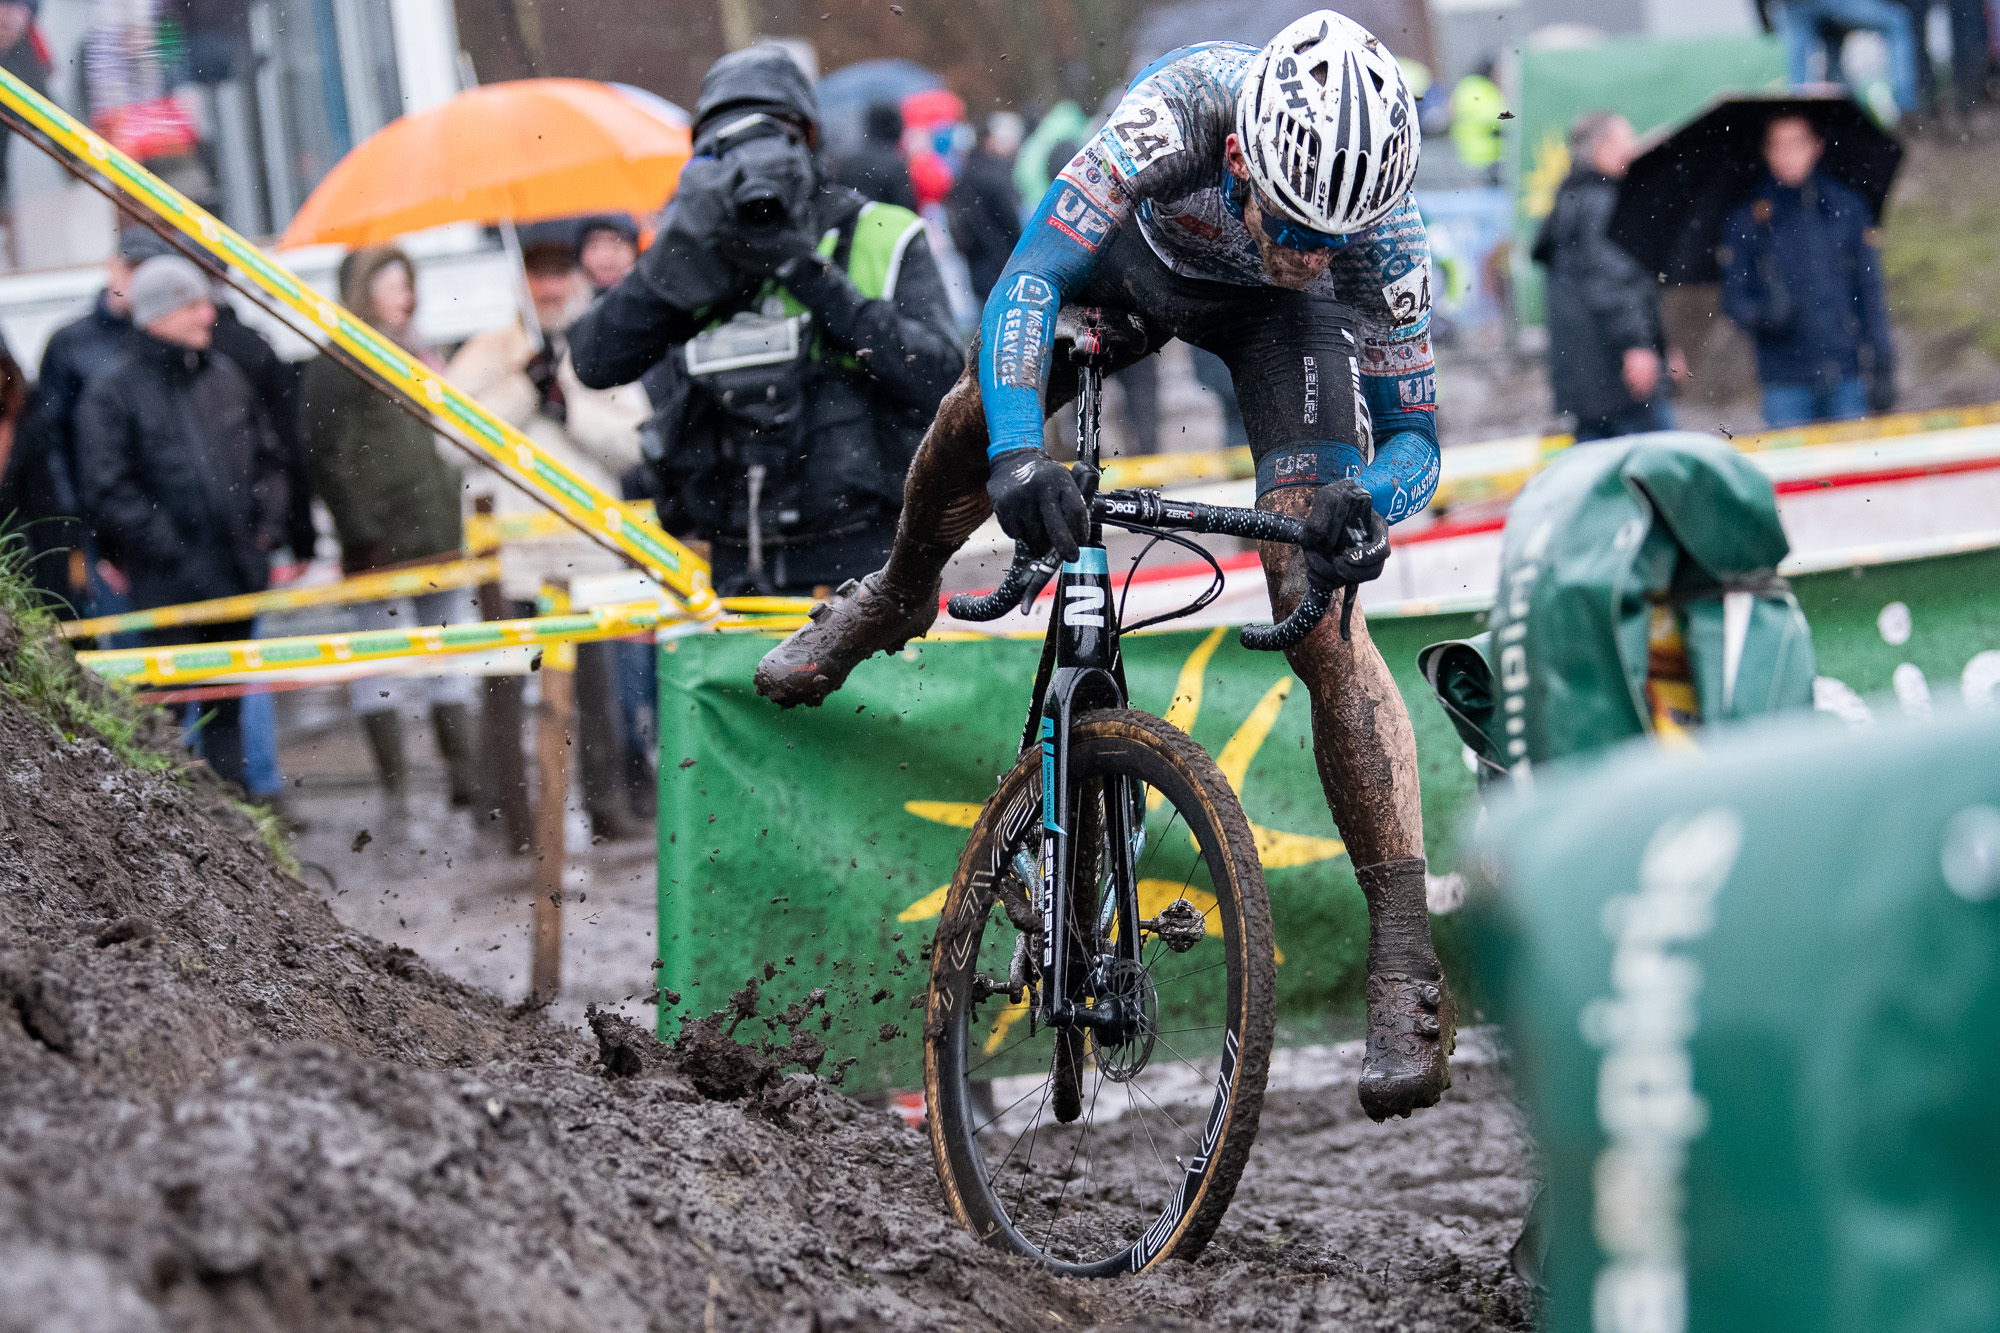 Sieben Wouters falling off his bike entering the off-camber in Hoogstraten